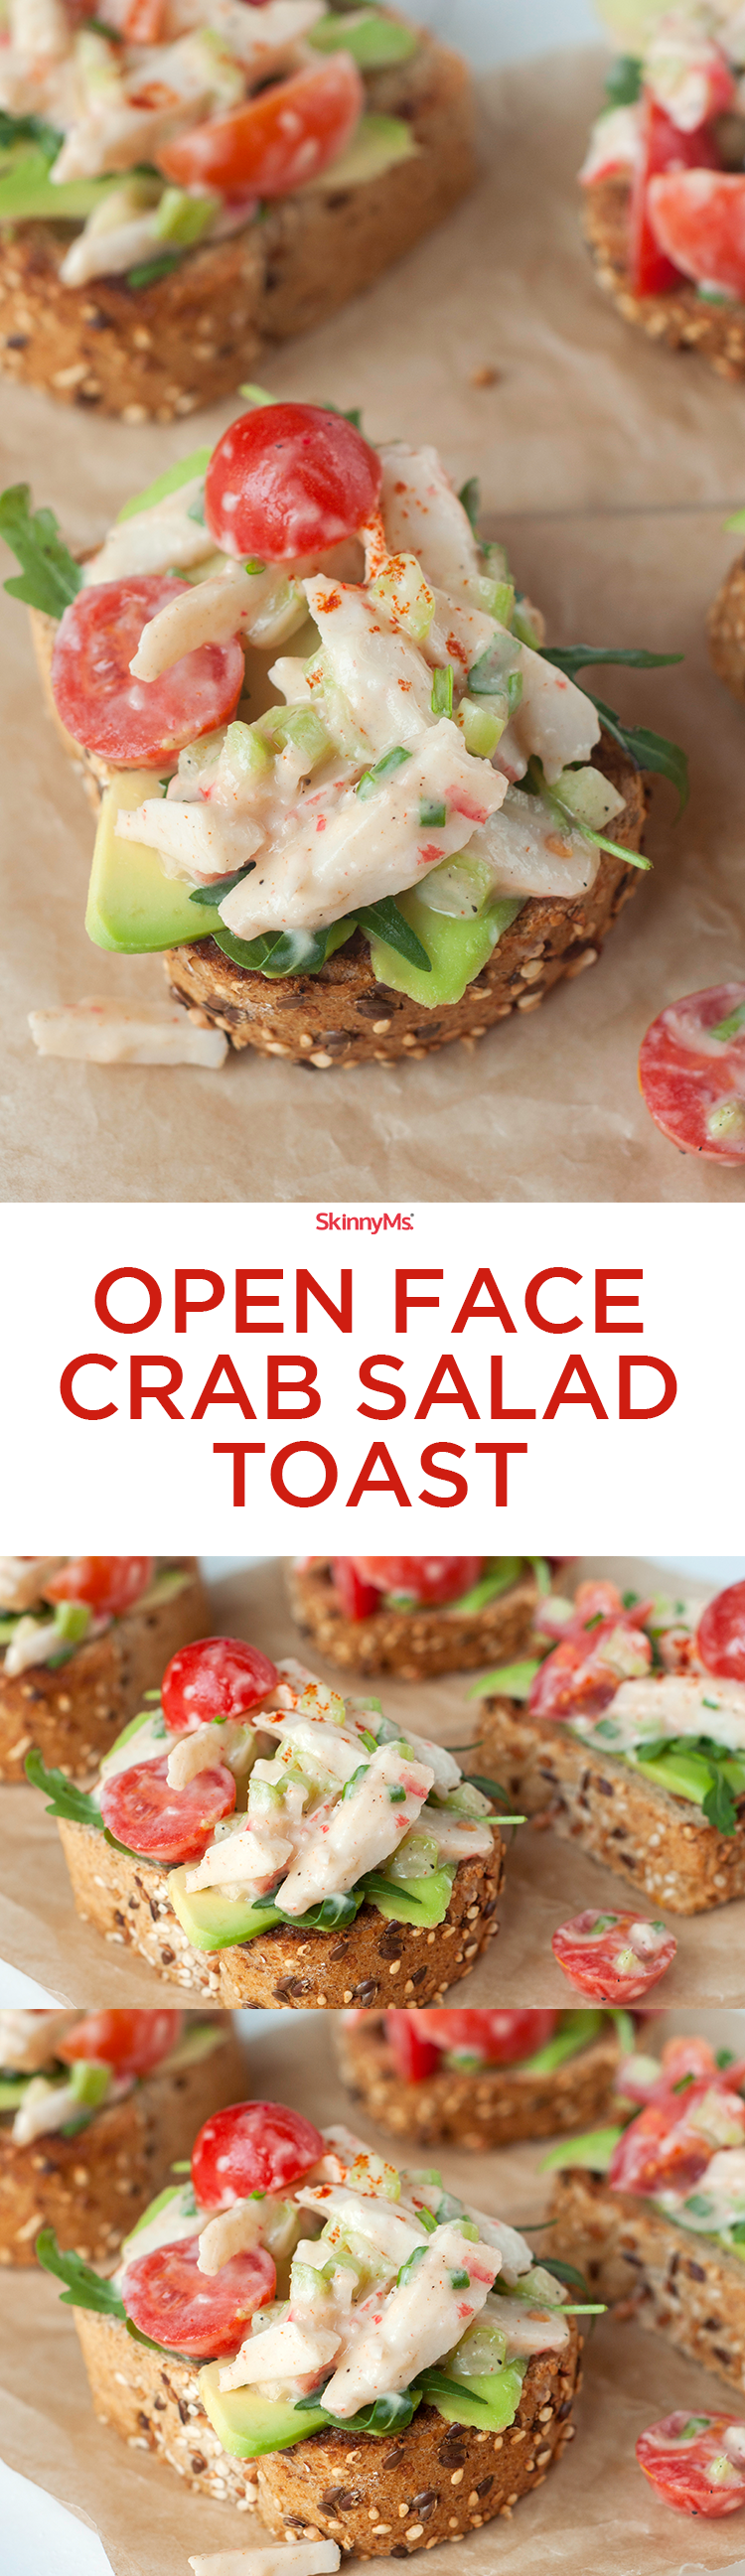 Open Face Crab Salad Toast